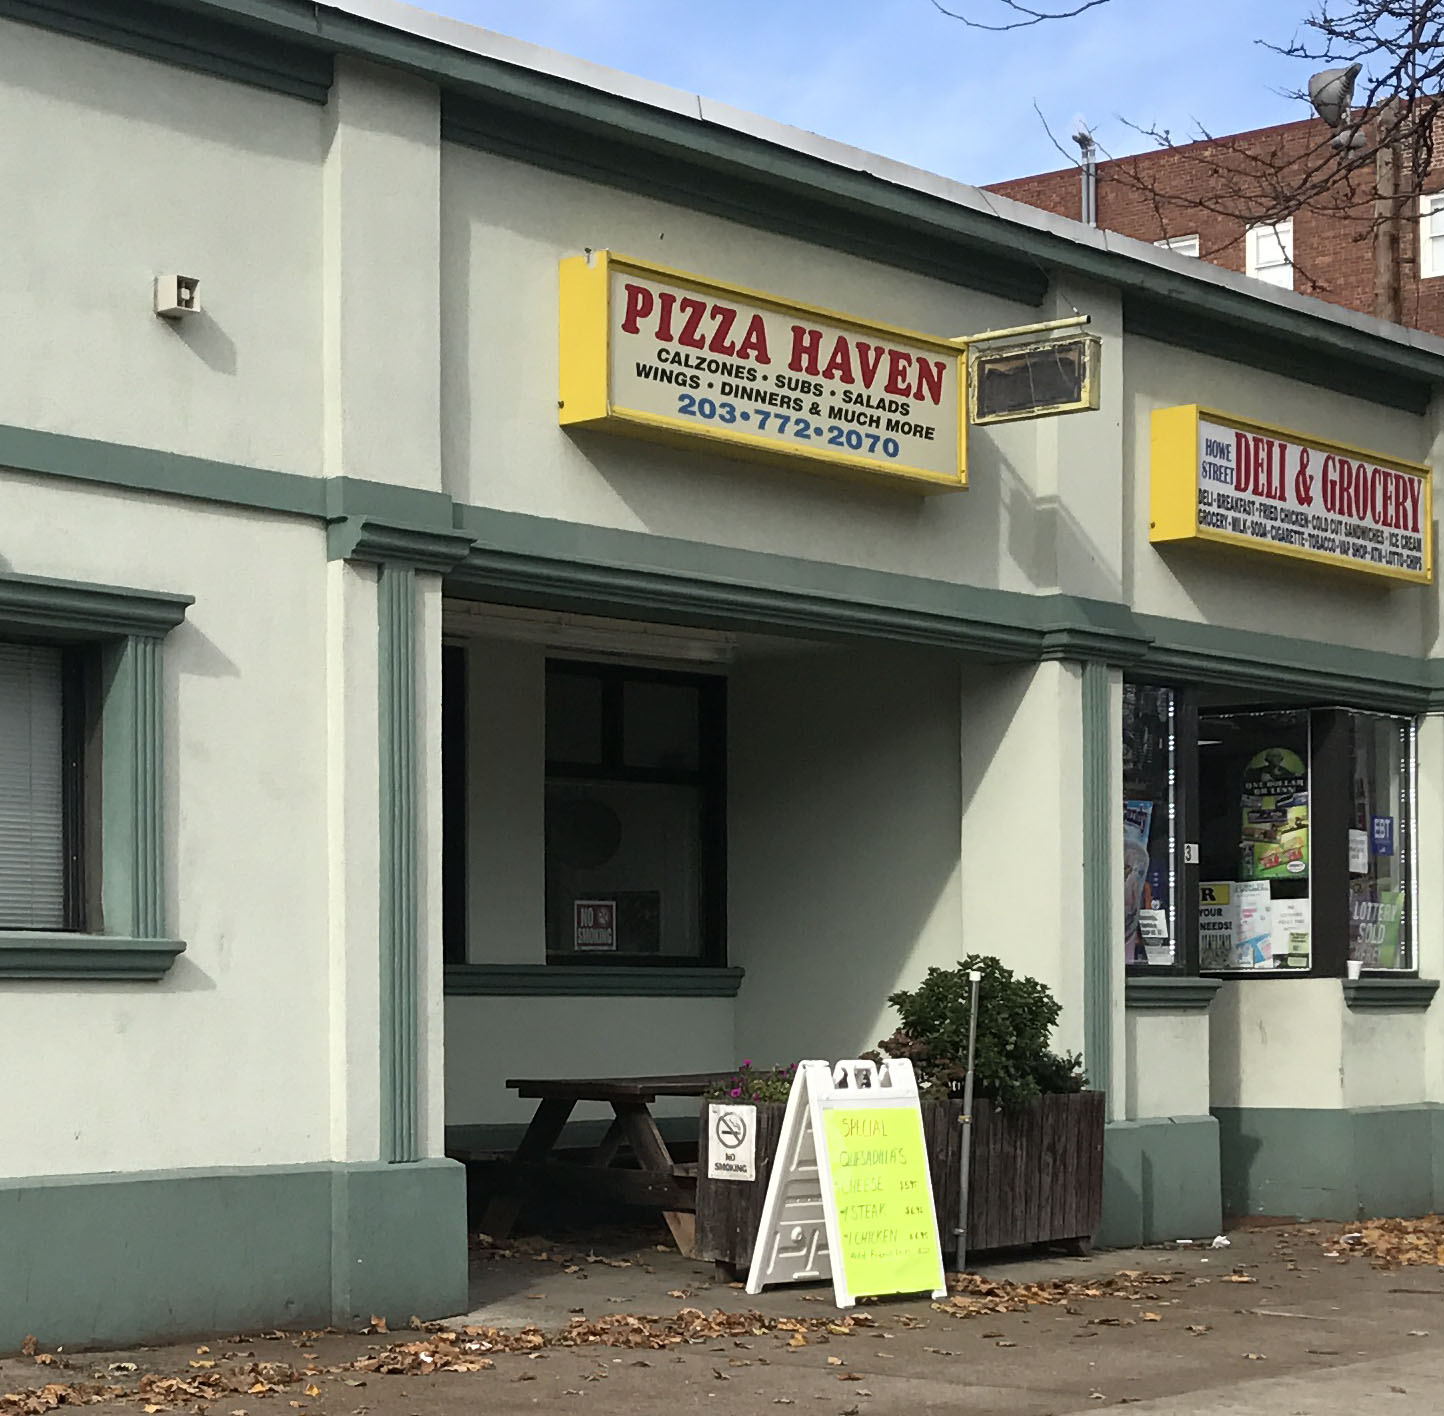 Pizza Haven 34 Howe Street 203) 772 2258